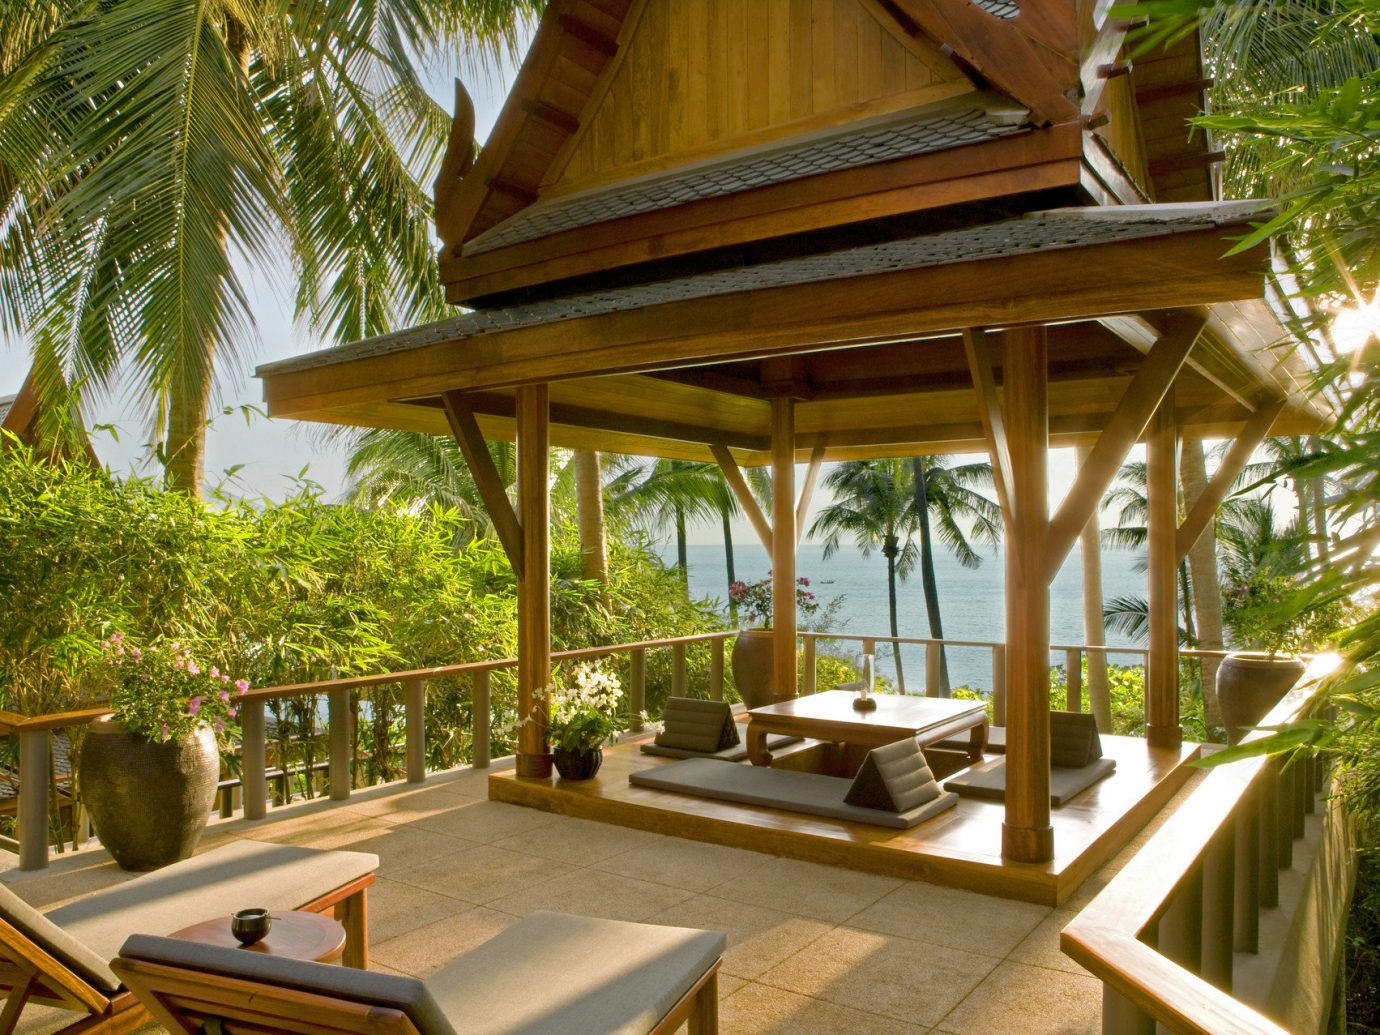 Beach Hotels Phuket Thailand tree outdoor building Resort property estate porch Villa house vacation home outdoor structure eco hotel real estate furniture cottage mansion area Deck shade